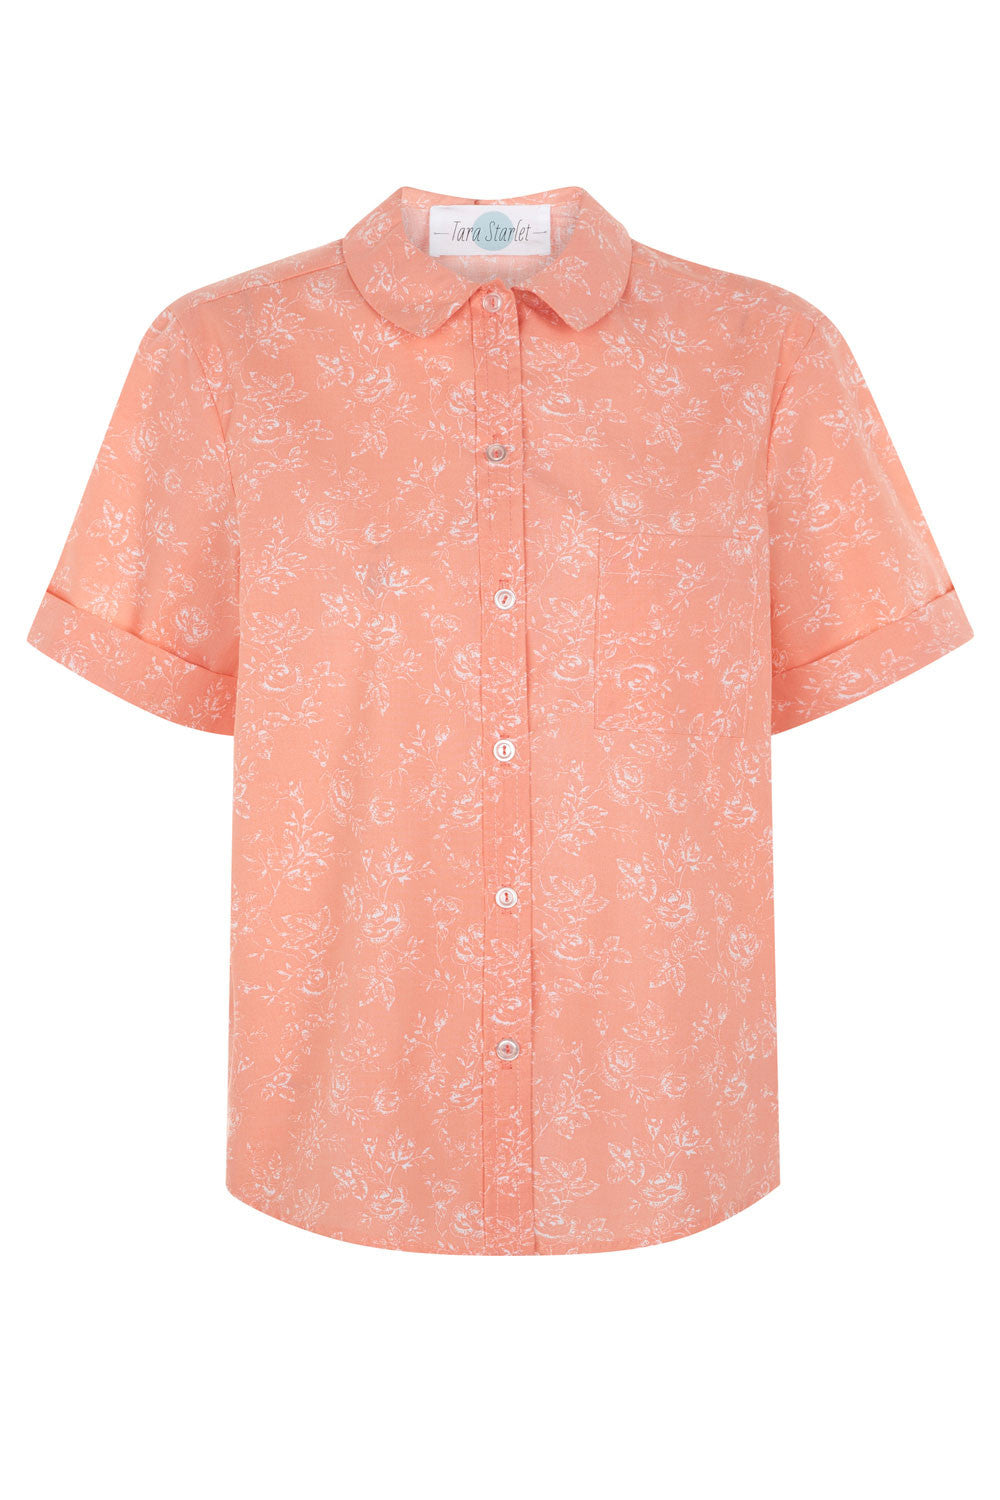 The Floral Audrey Shirt - Peach